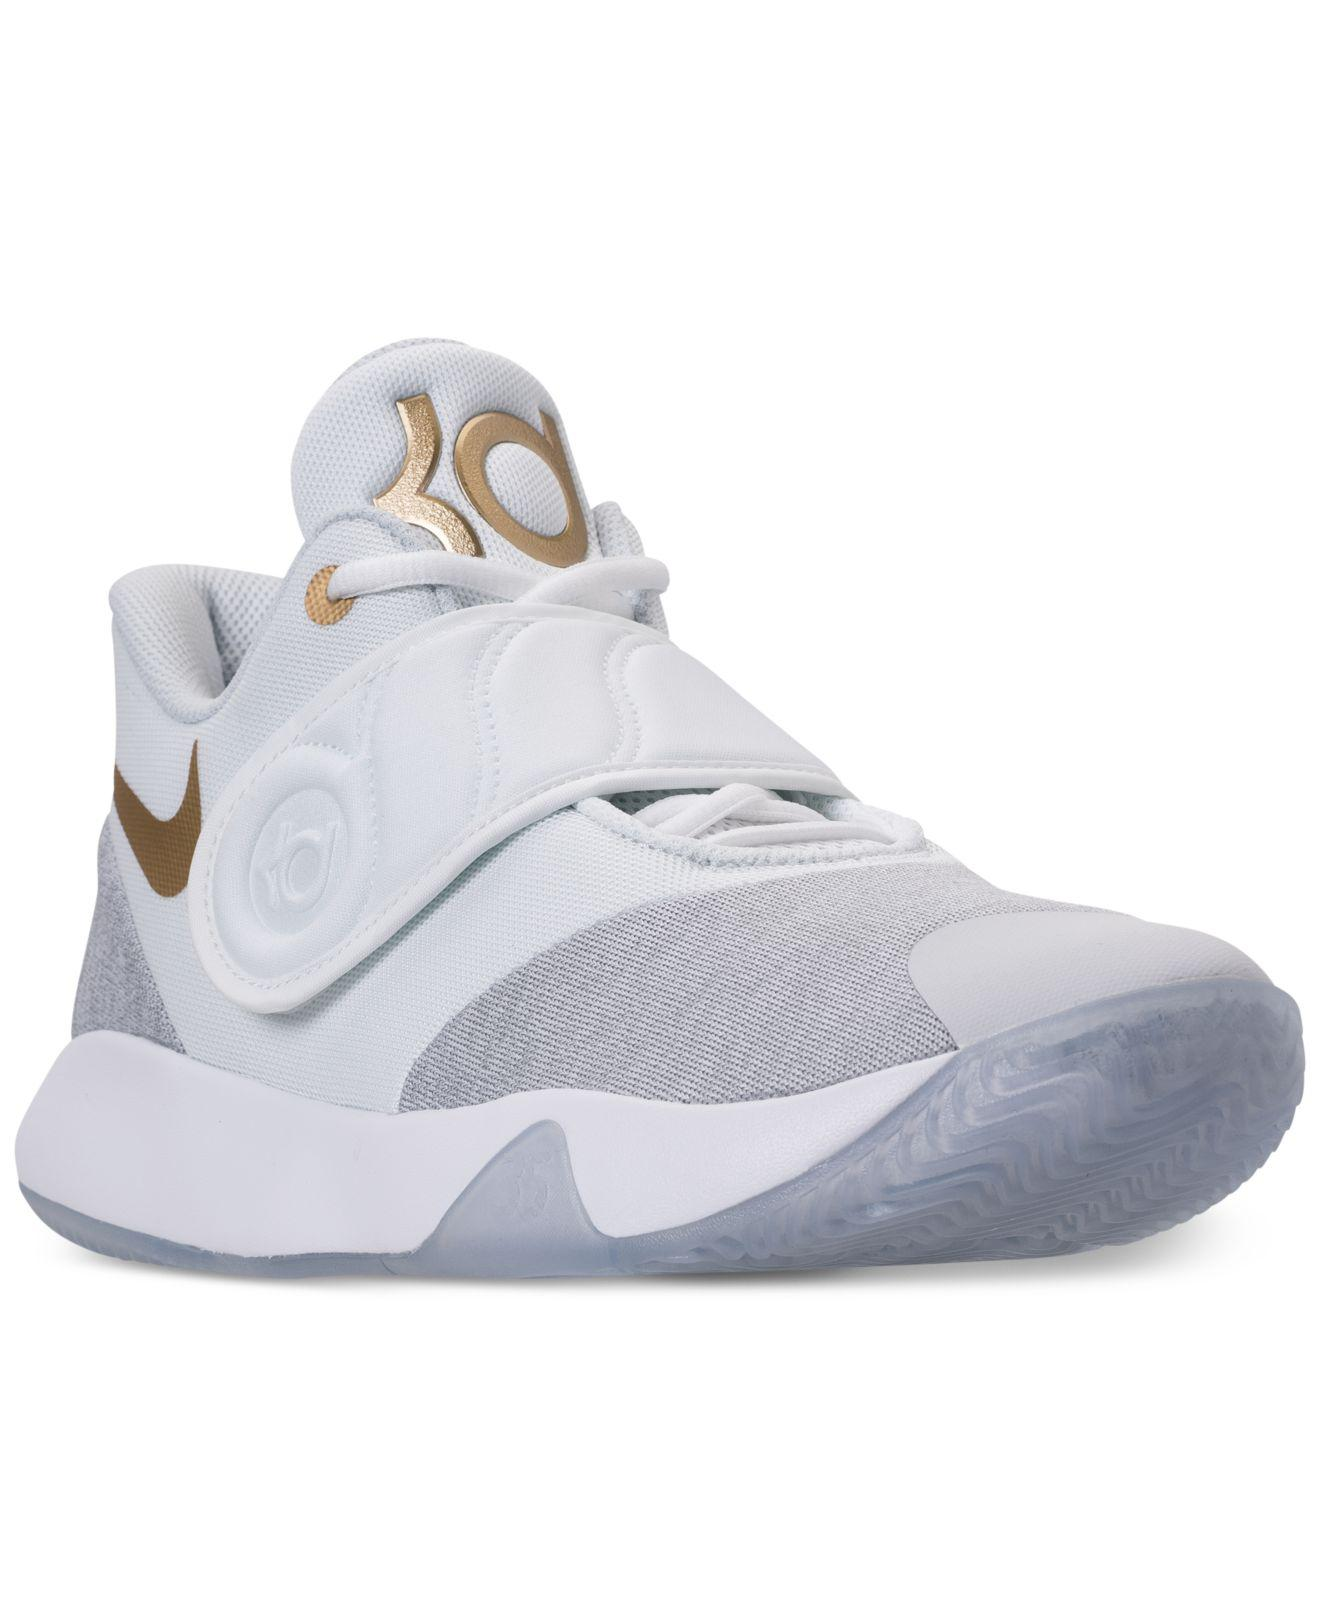 d21d96c7933a Lyst - Nike Kd Trey 5 Vi Basketball Sneakers From Finish Line in ...